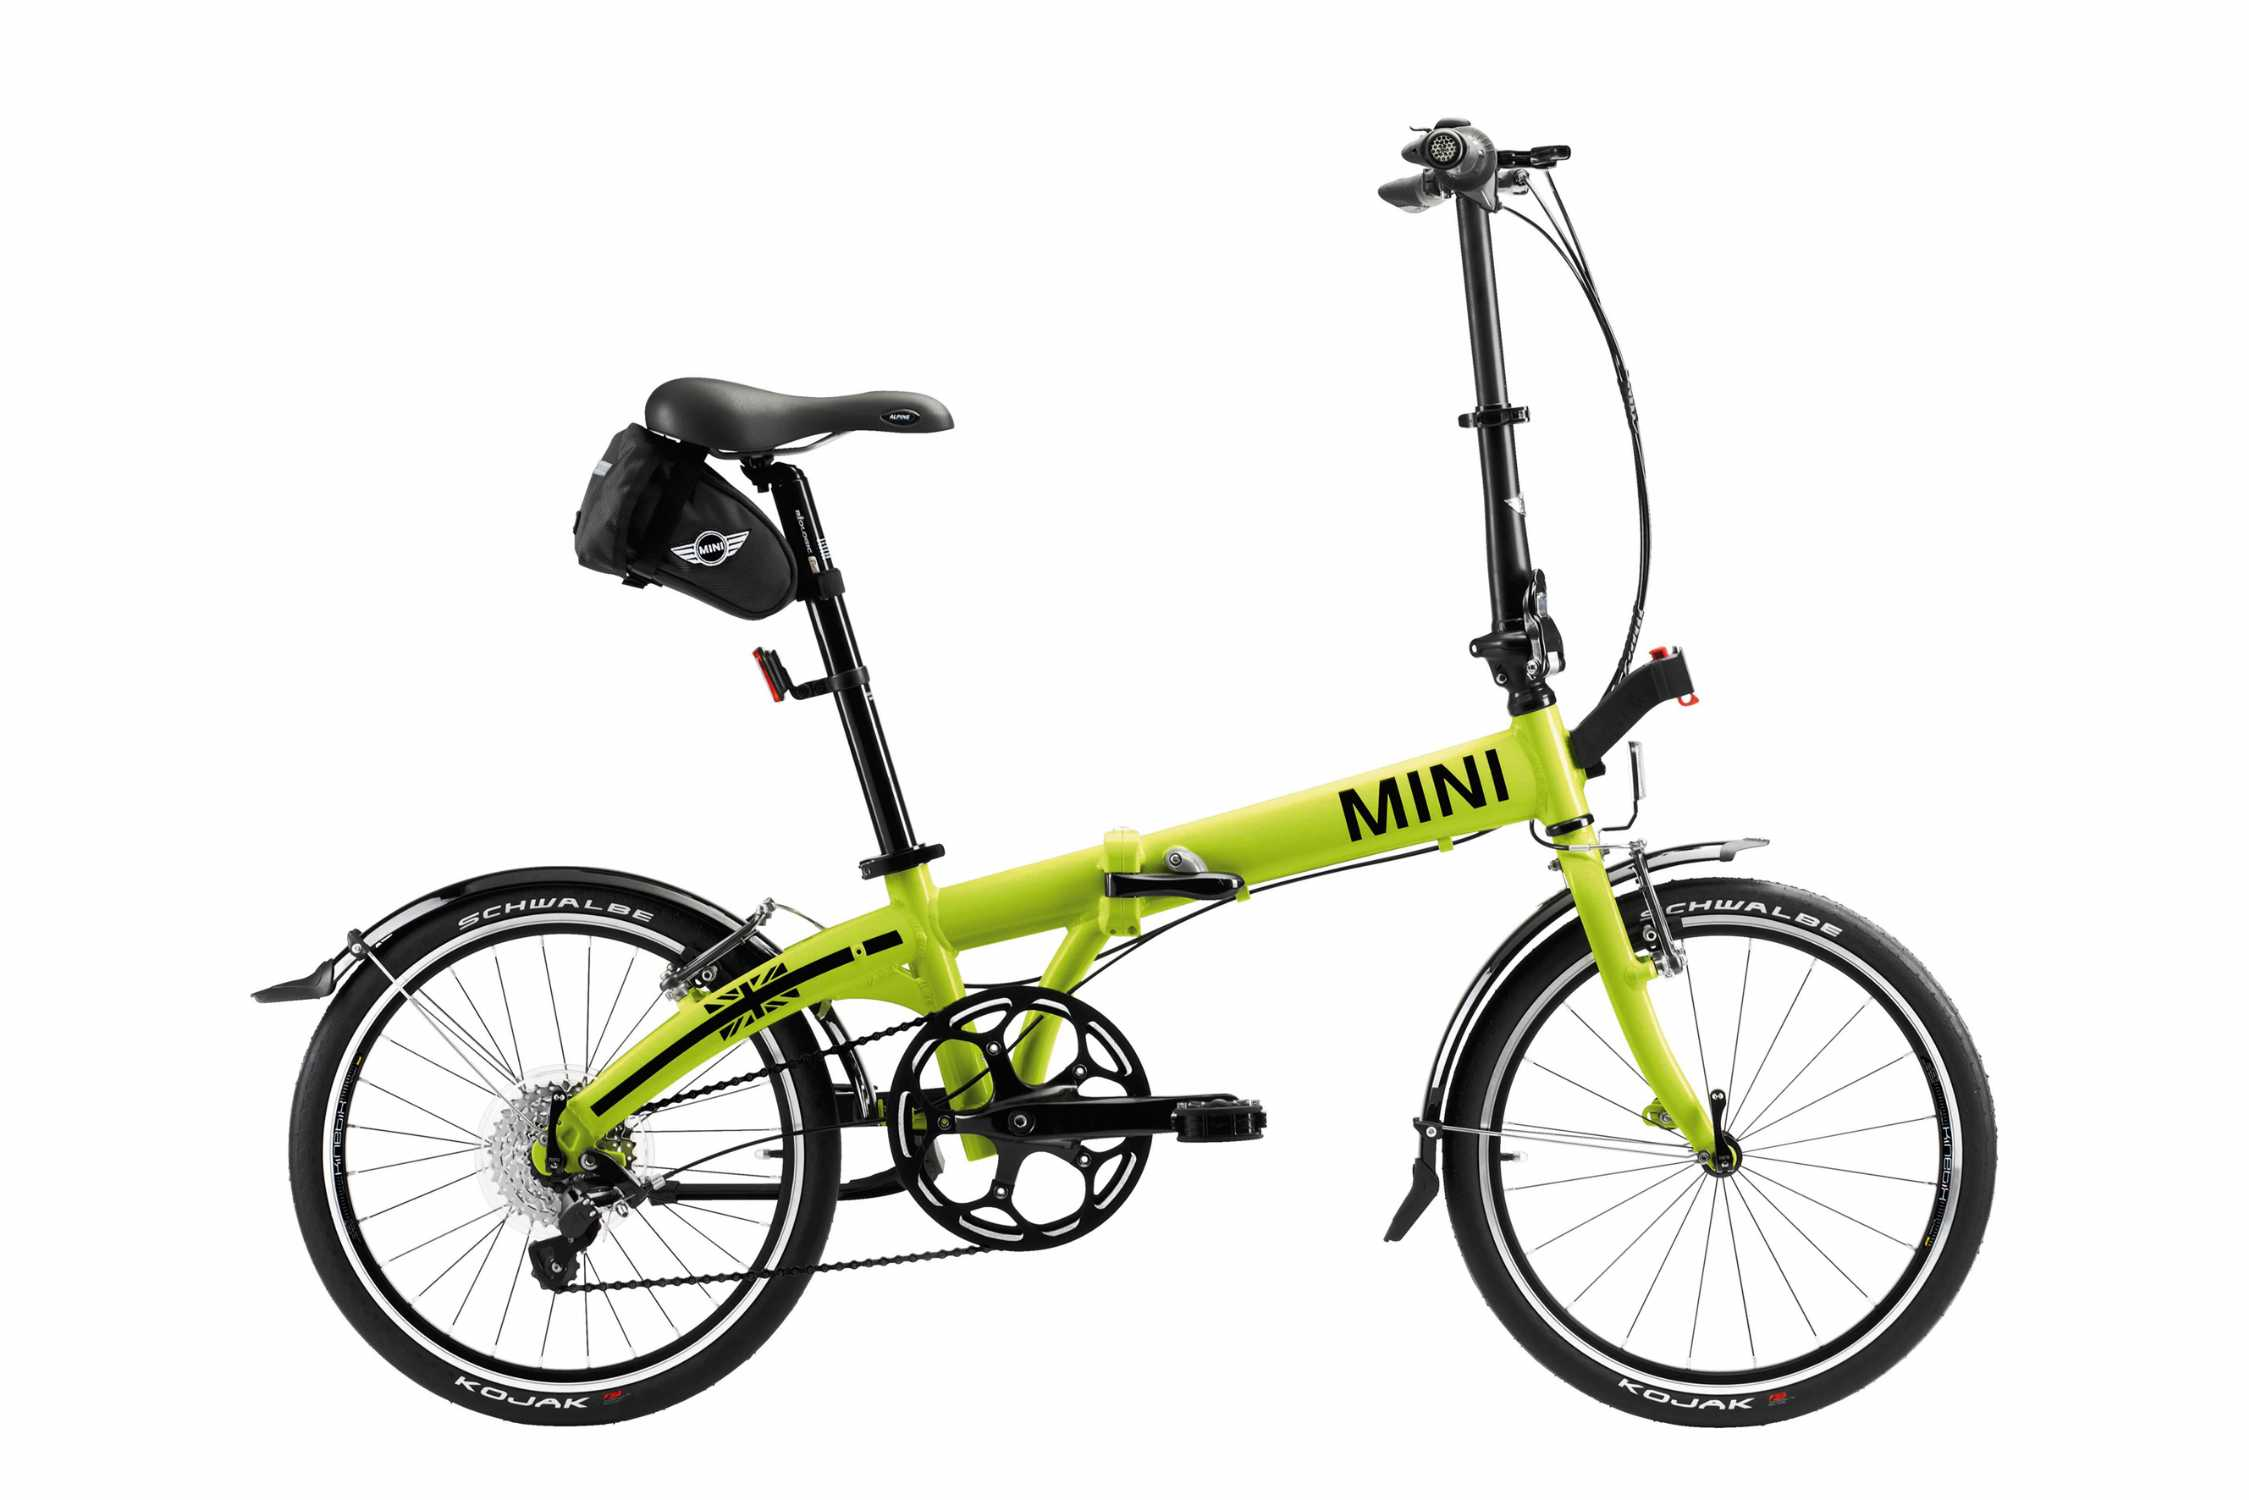 mini folding bike der neue mini zum falten knallgelbes klapprad mit cleverem zubeh r f r die. Black Bedroom Furniture Sets. Home Design Ideas